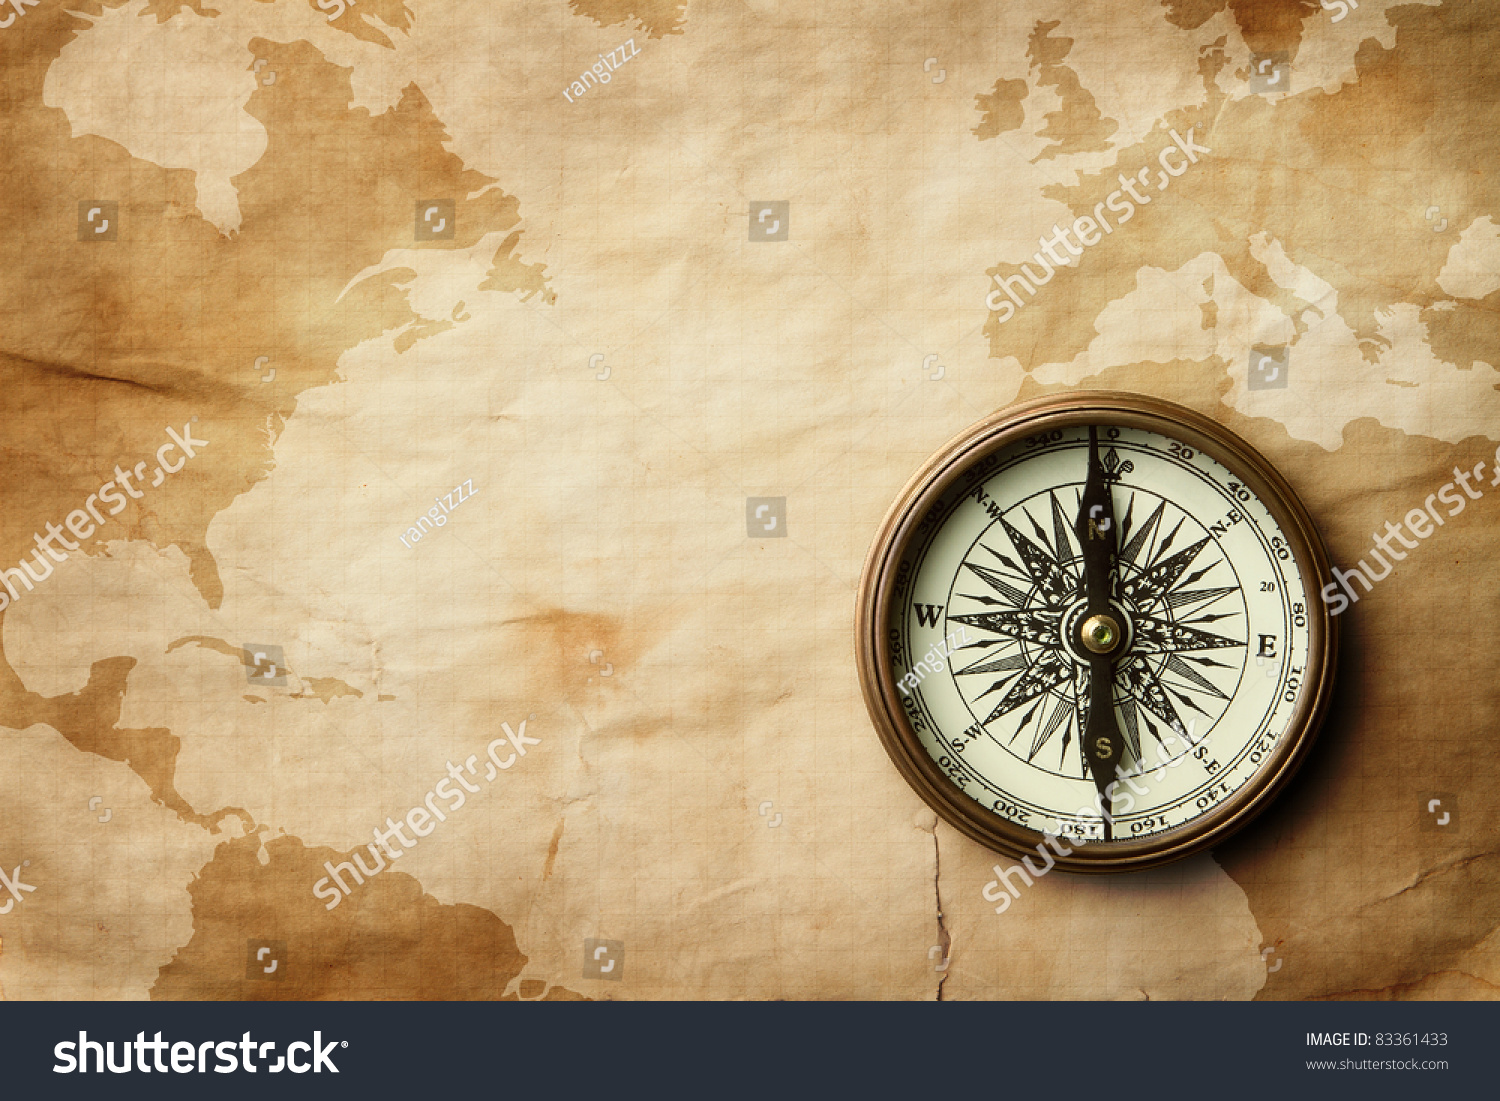 Vintage Compass Old Crumpled World Map Stock Photo